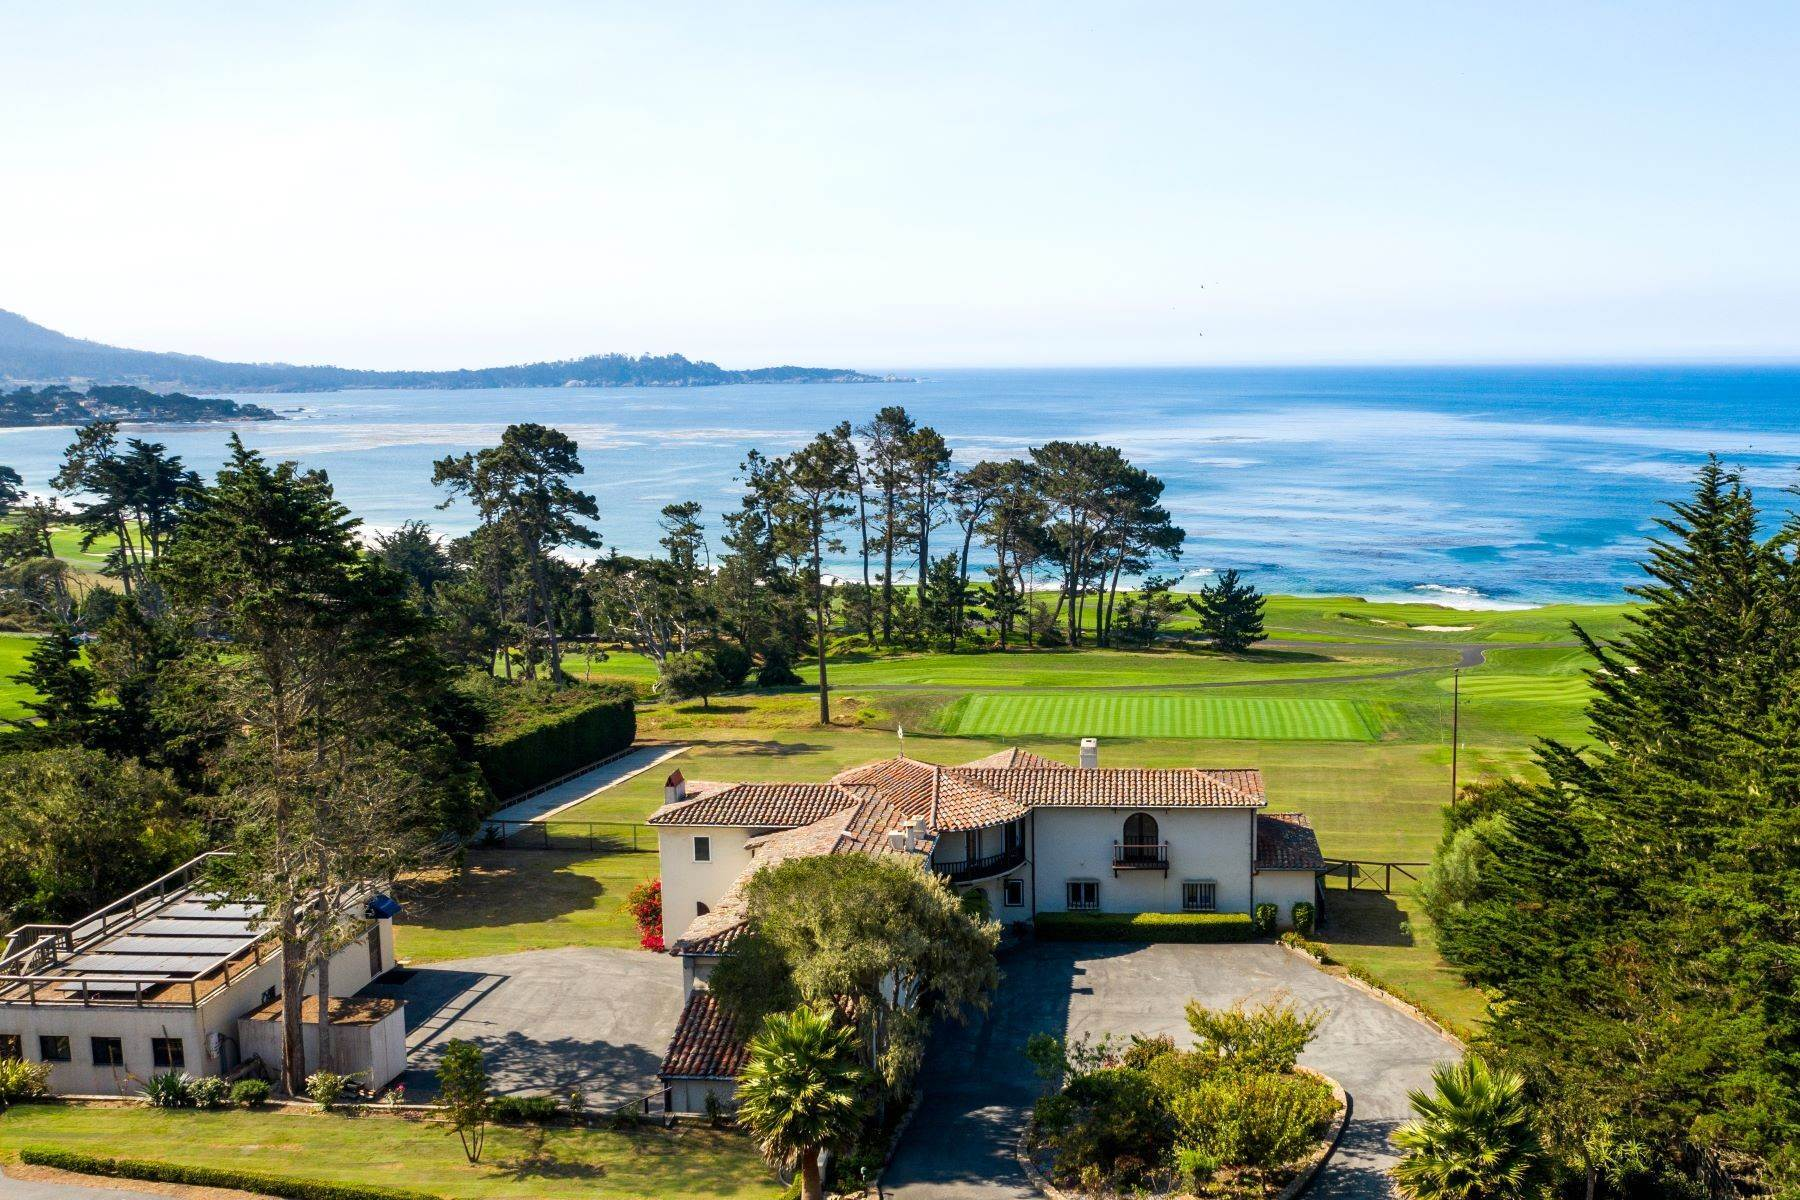 Single Family Homes for Sale at Robert Hunter's Fairview 3406 17 Mile Drive Pebble Beach, California 93953 United States